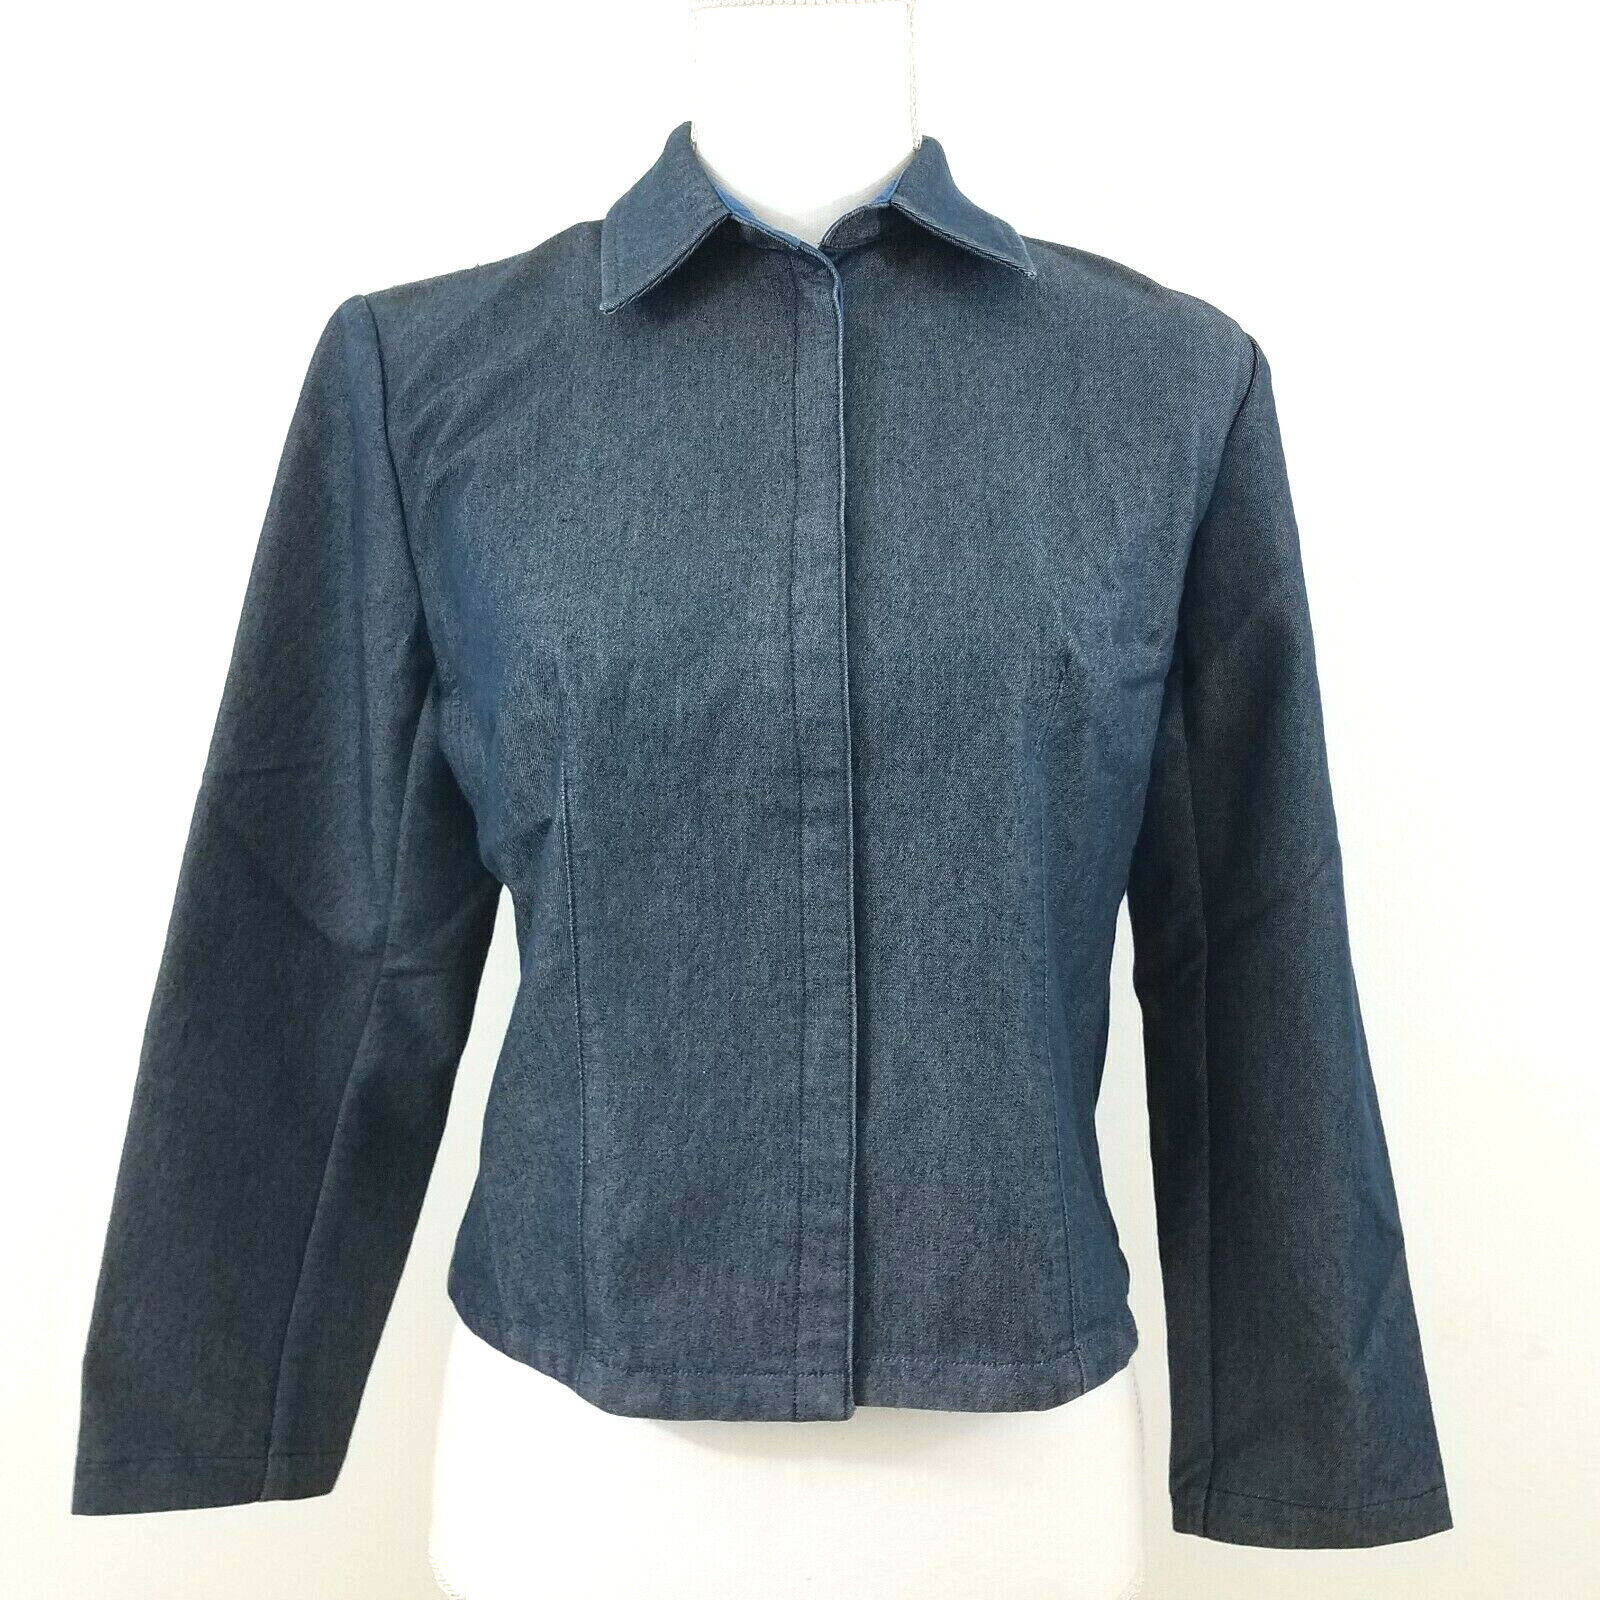 Banana Republic Womens Stretch Jacket Size 4 Navy Snap Buttons Long Sleeve